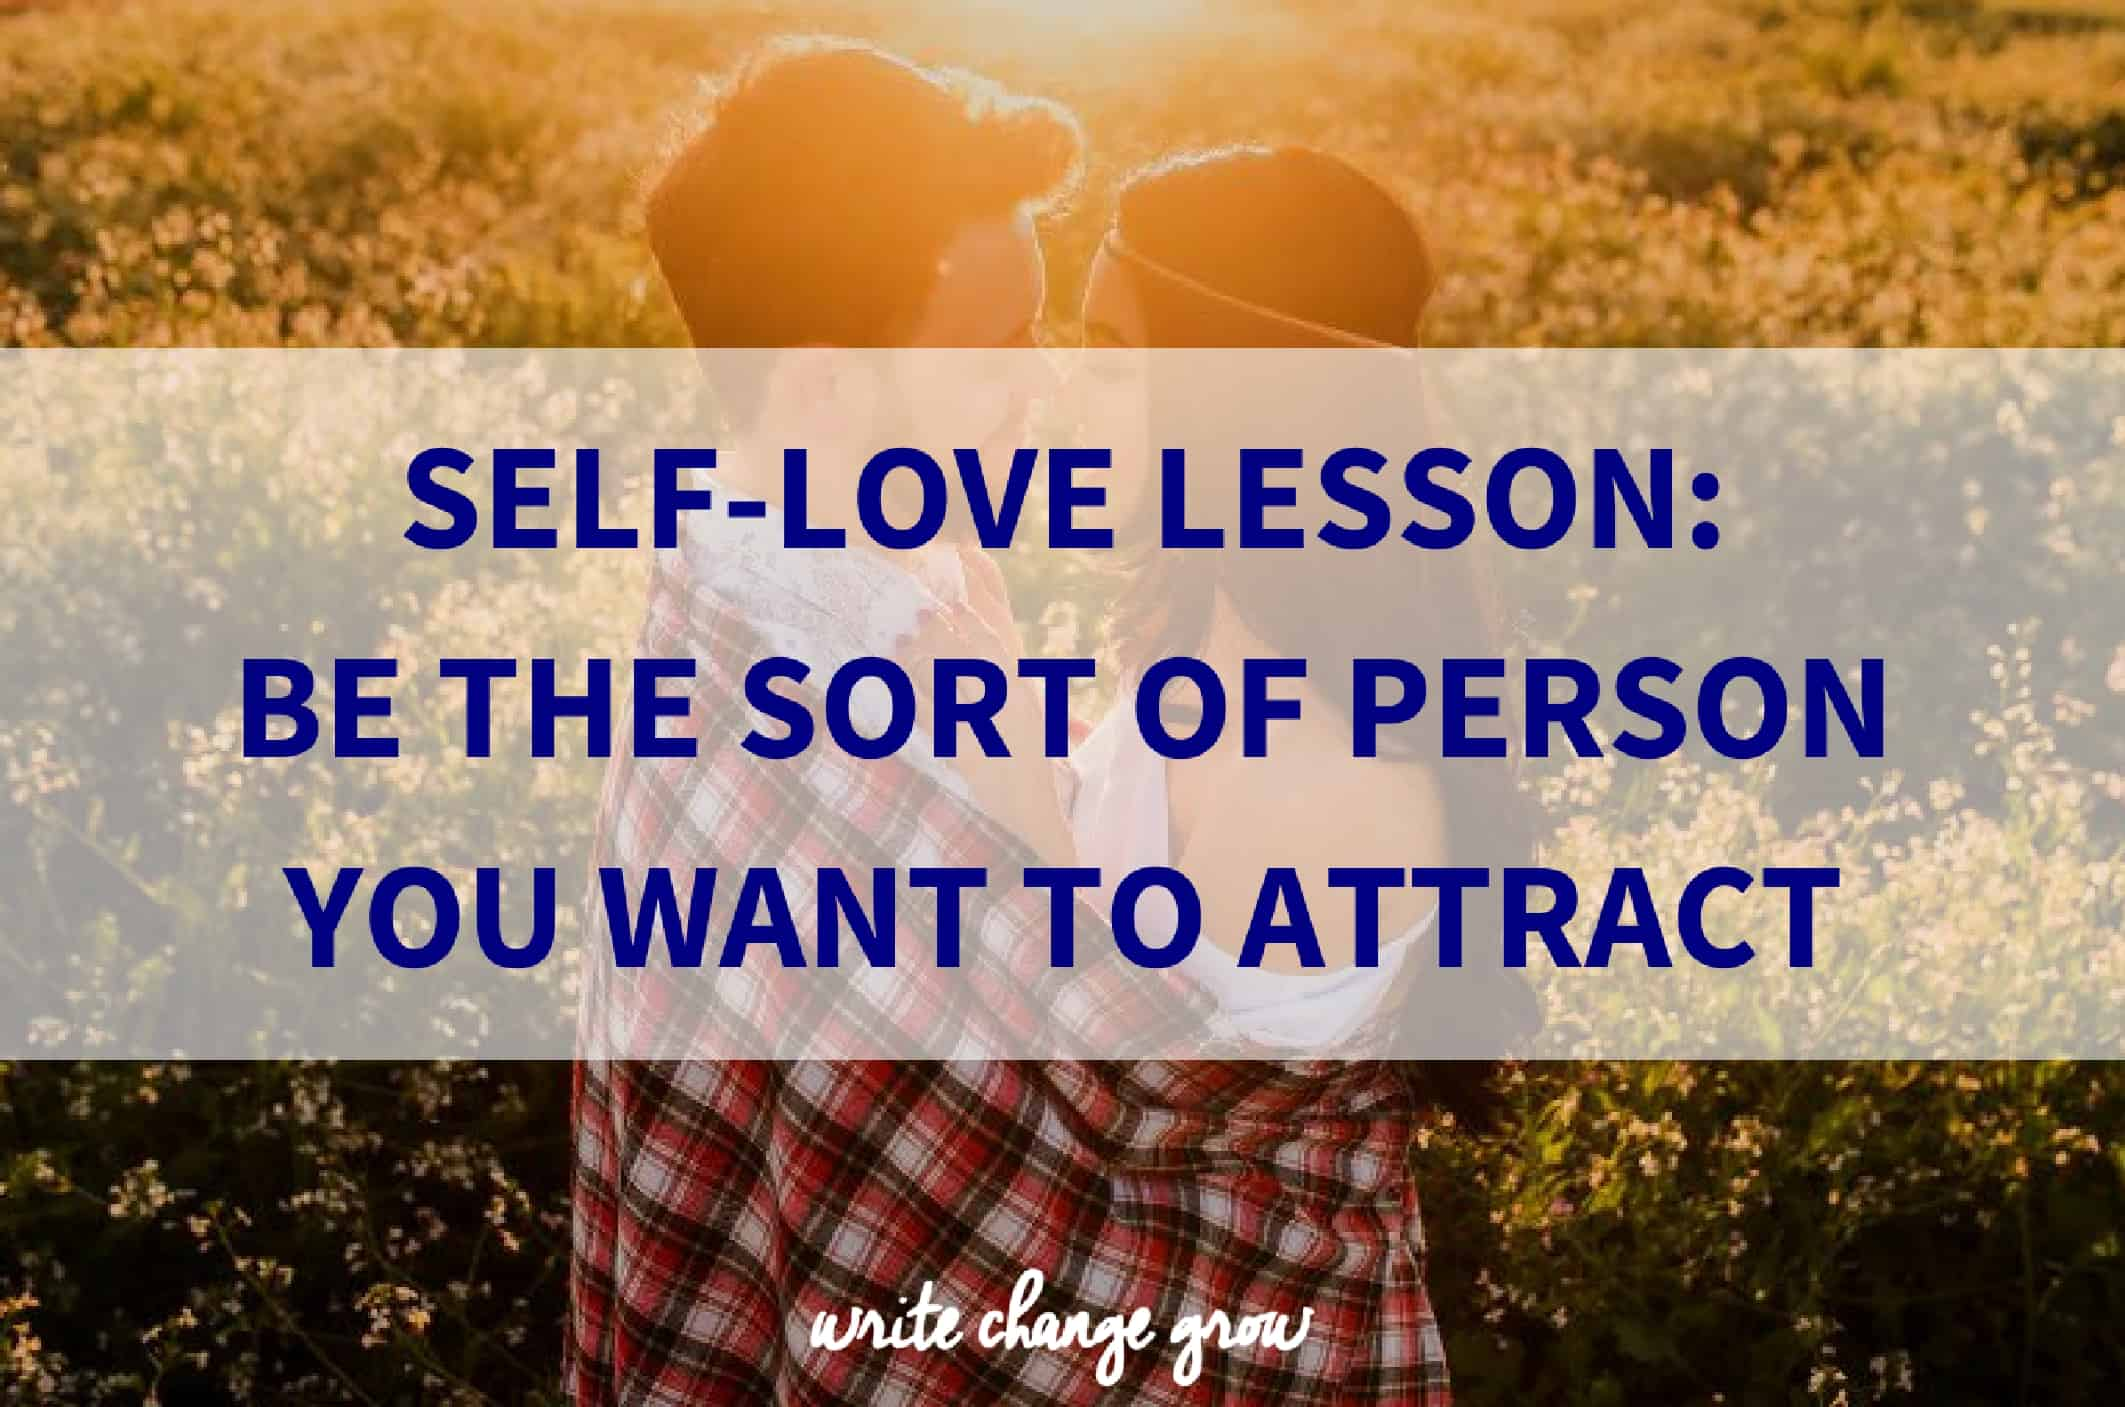 Be the sort of person you want to attract.